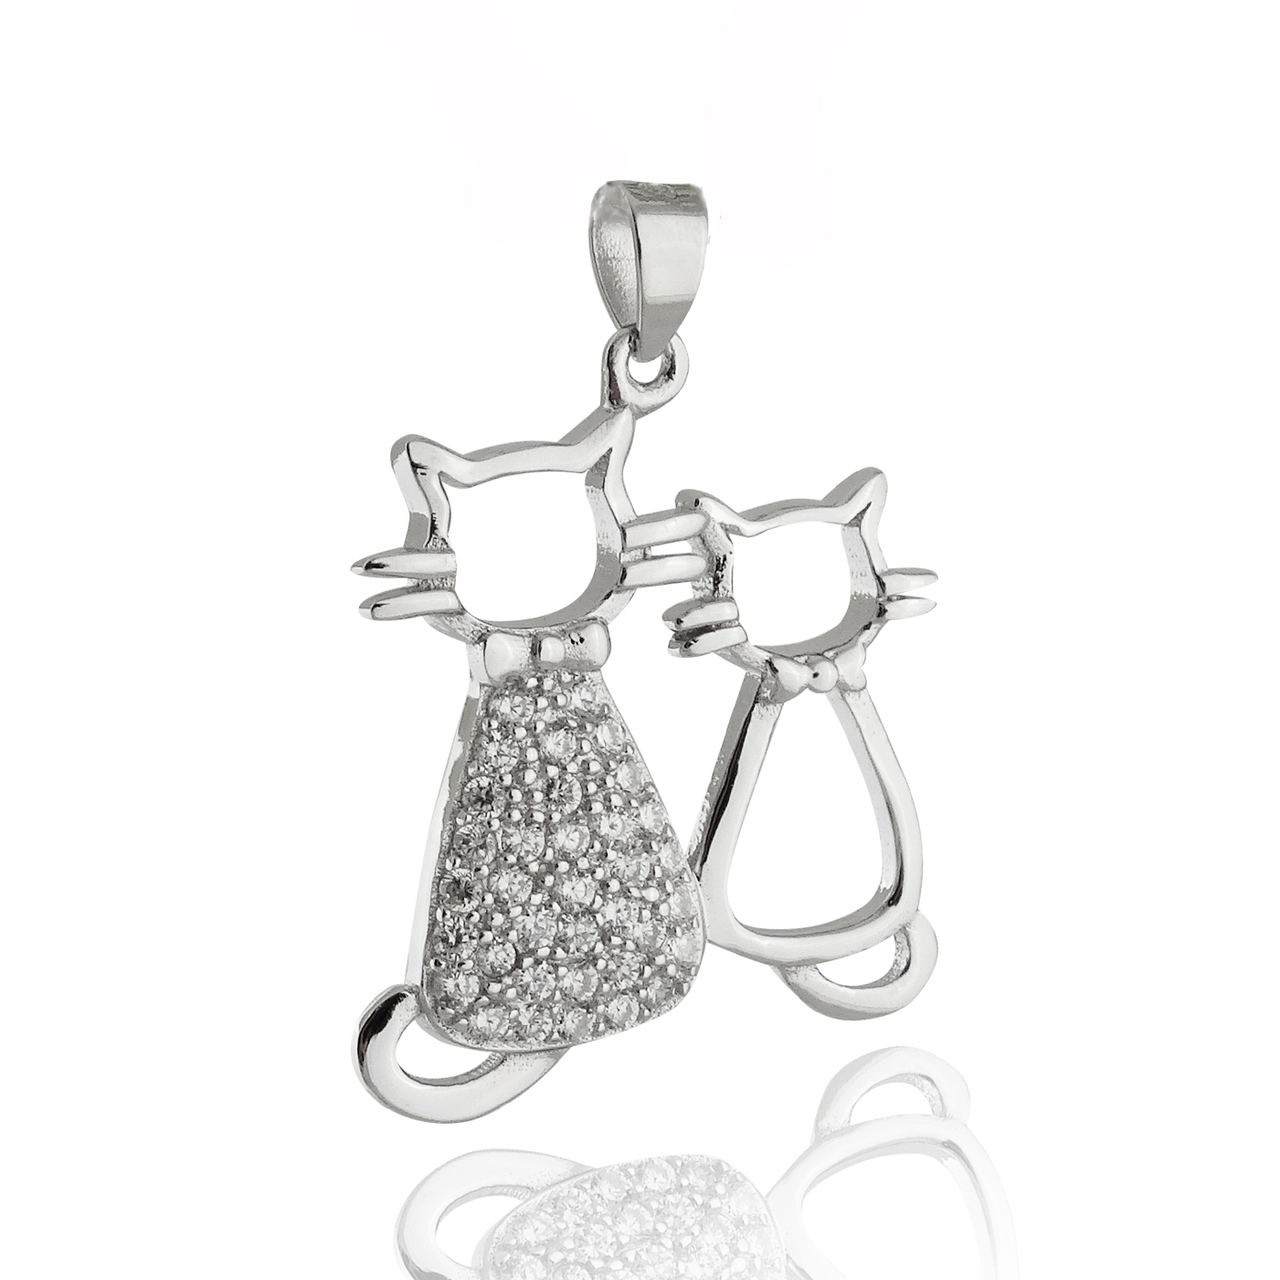 Two Cats Necklace - 925 Sterling Silver with CZ